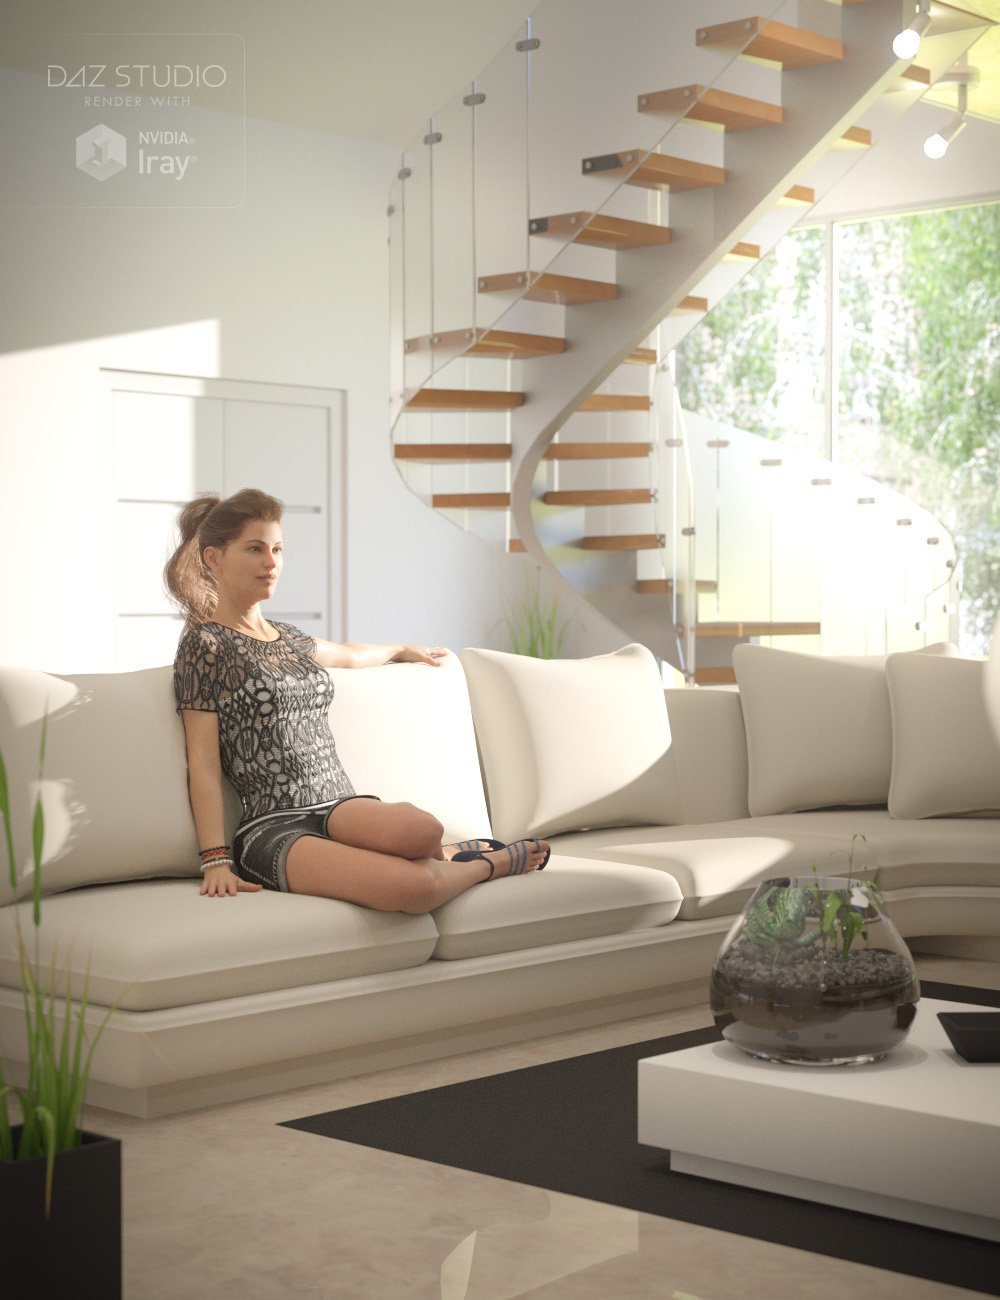 Upscale Apartment by: Val3dart, 3D Models by Daz 3D